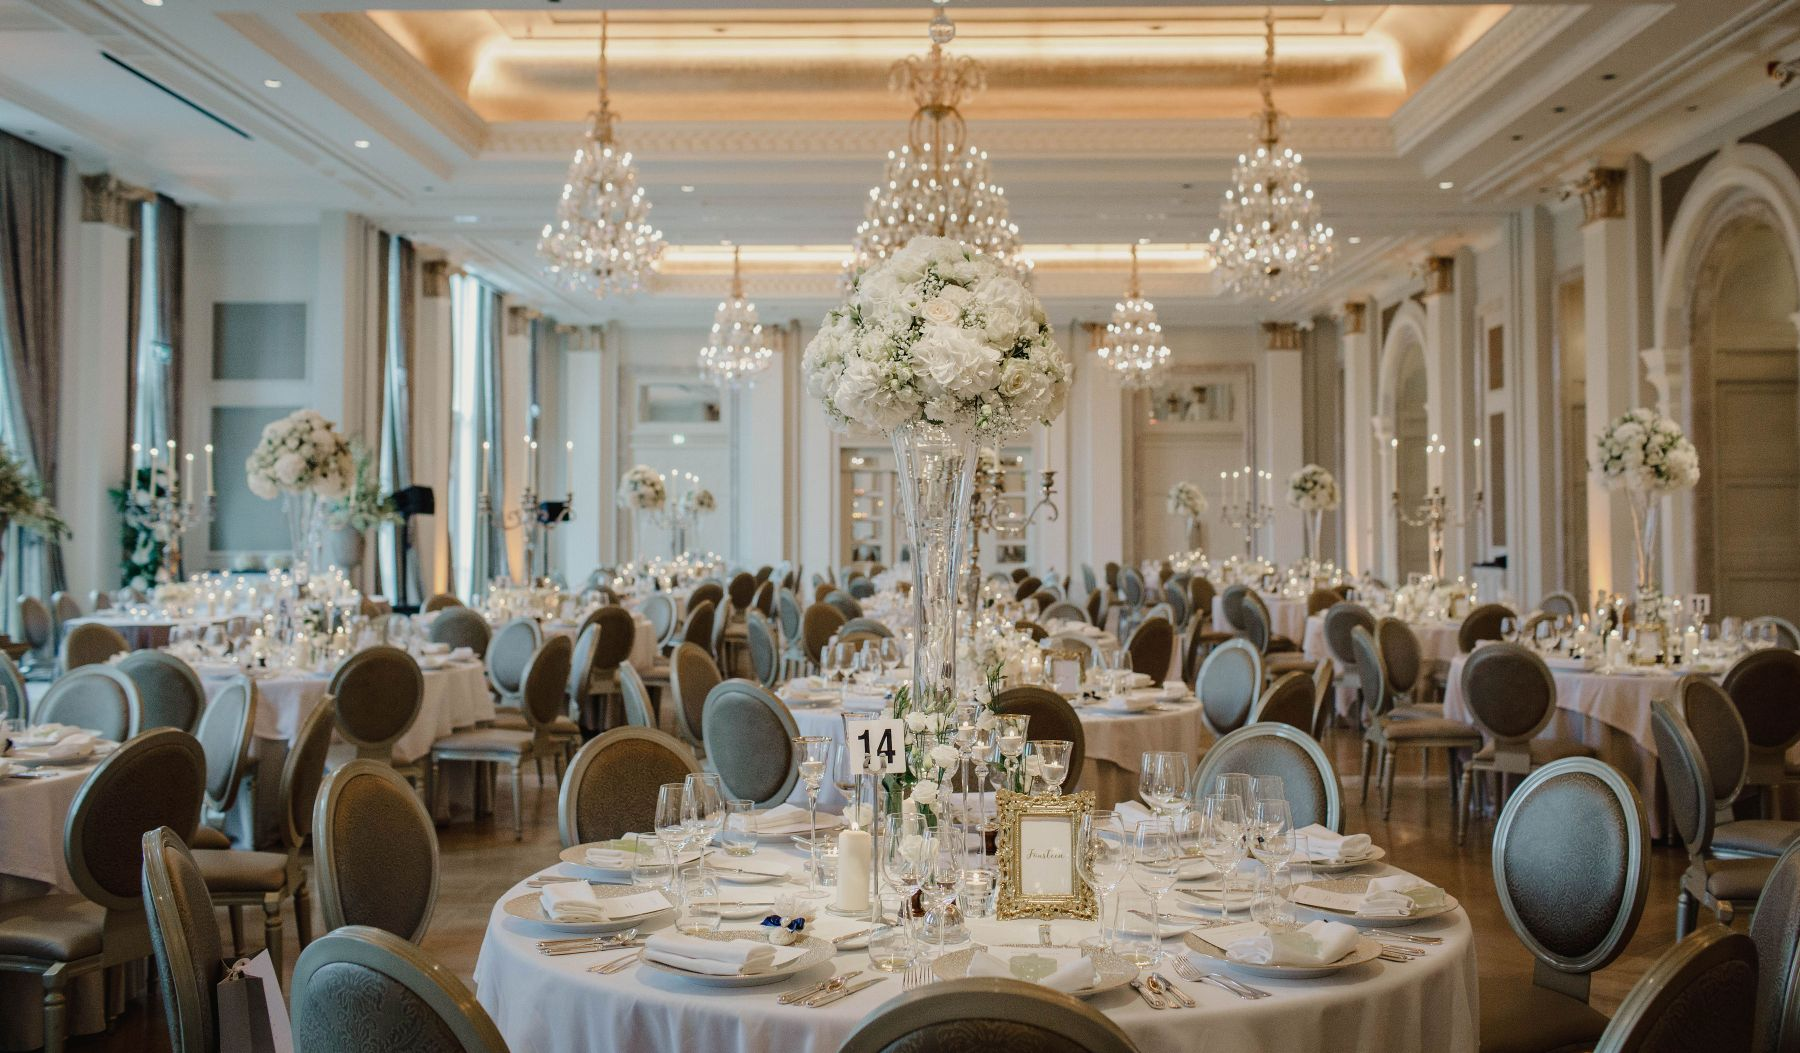 Wedding Banquet Room in Ivory and Gold